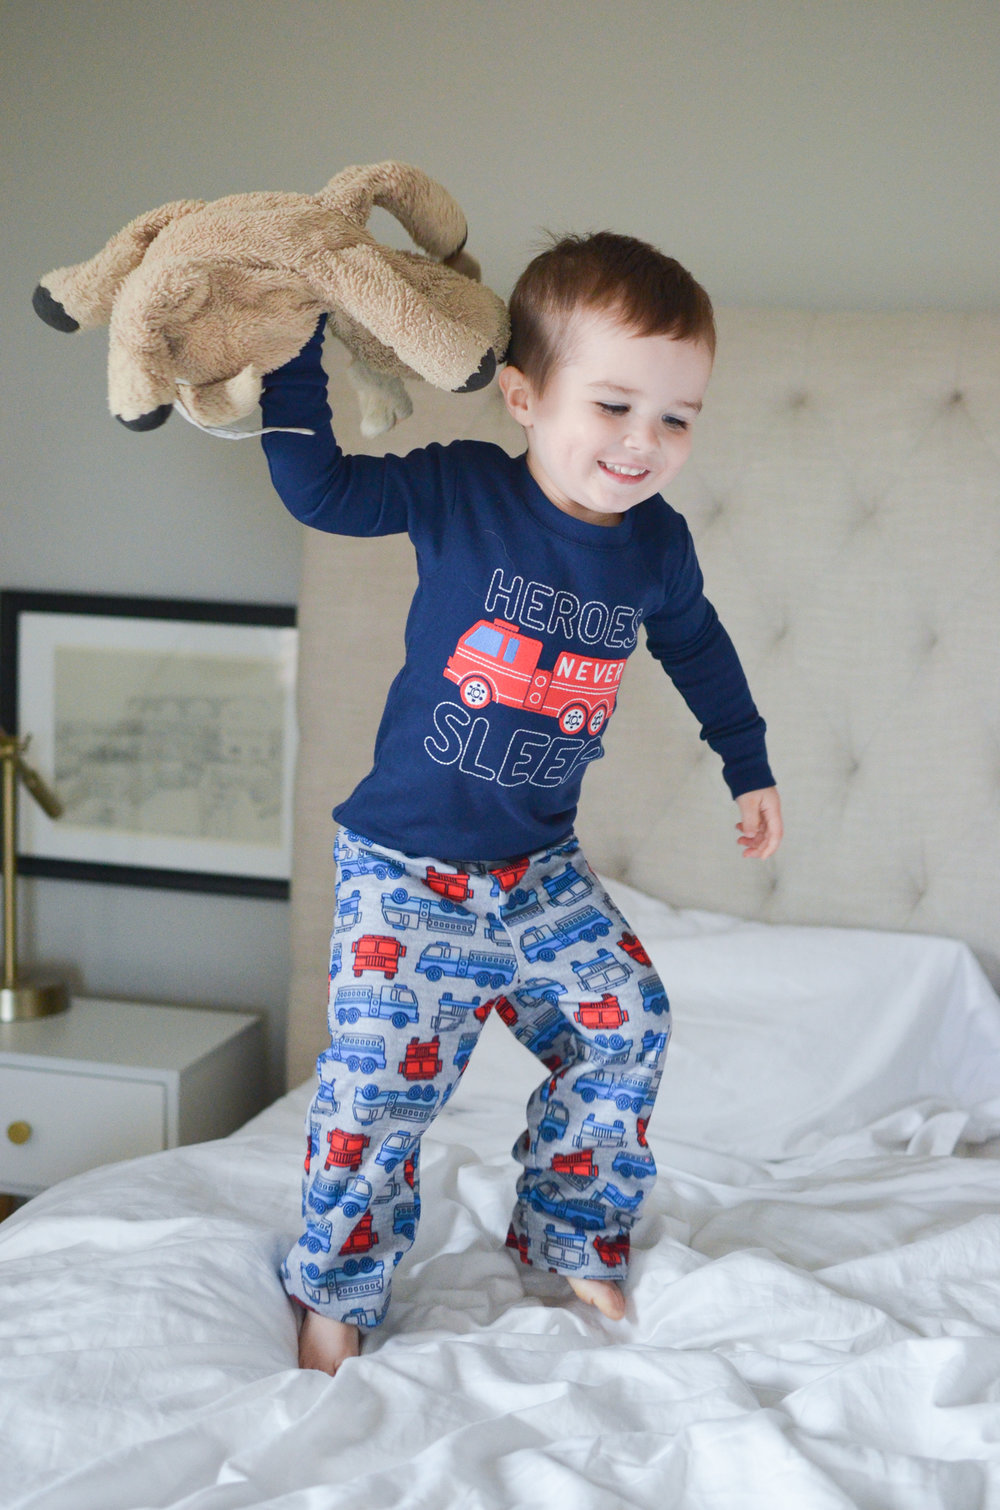 Bedtime Routine Secrets with Two Kids | Simple Joy Carters review pajamas